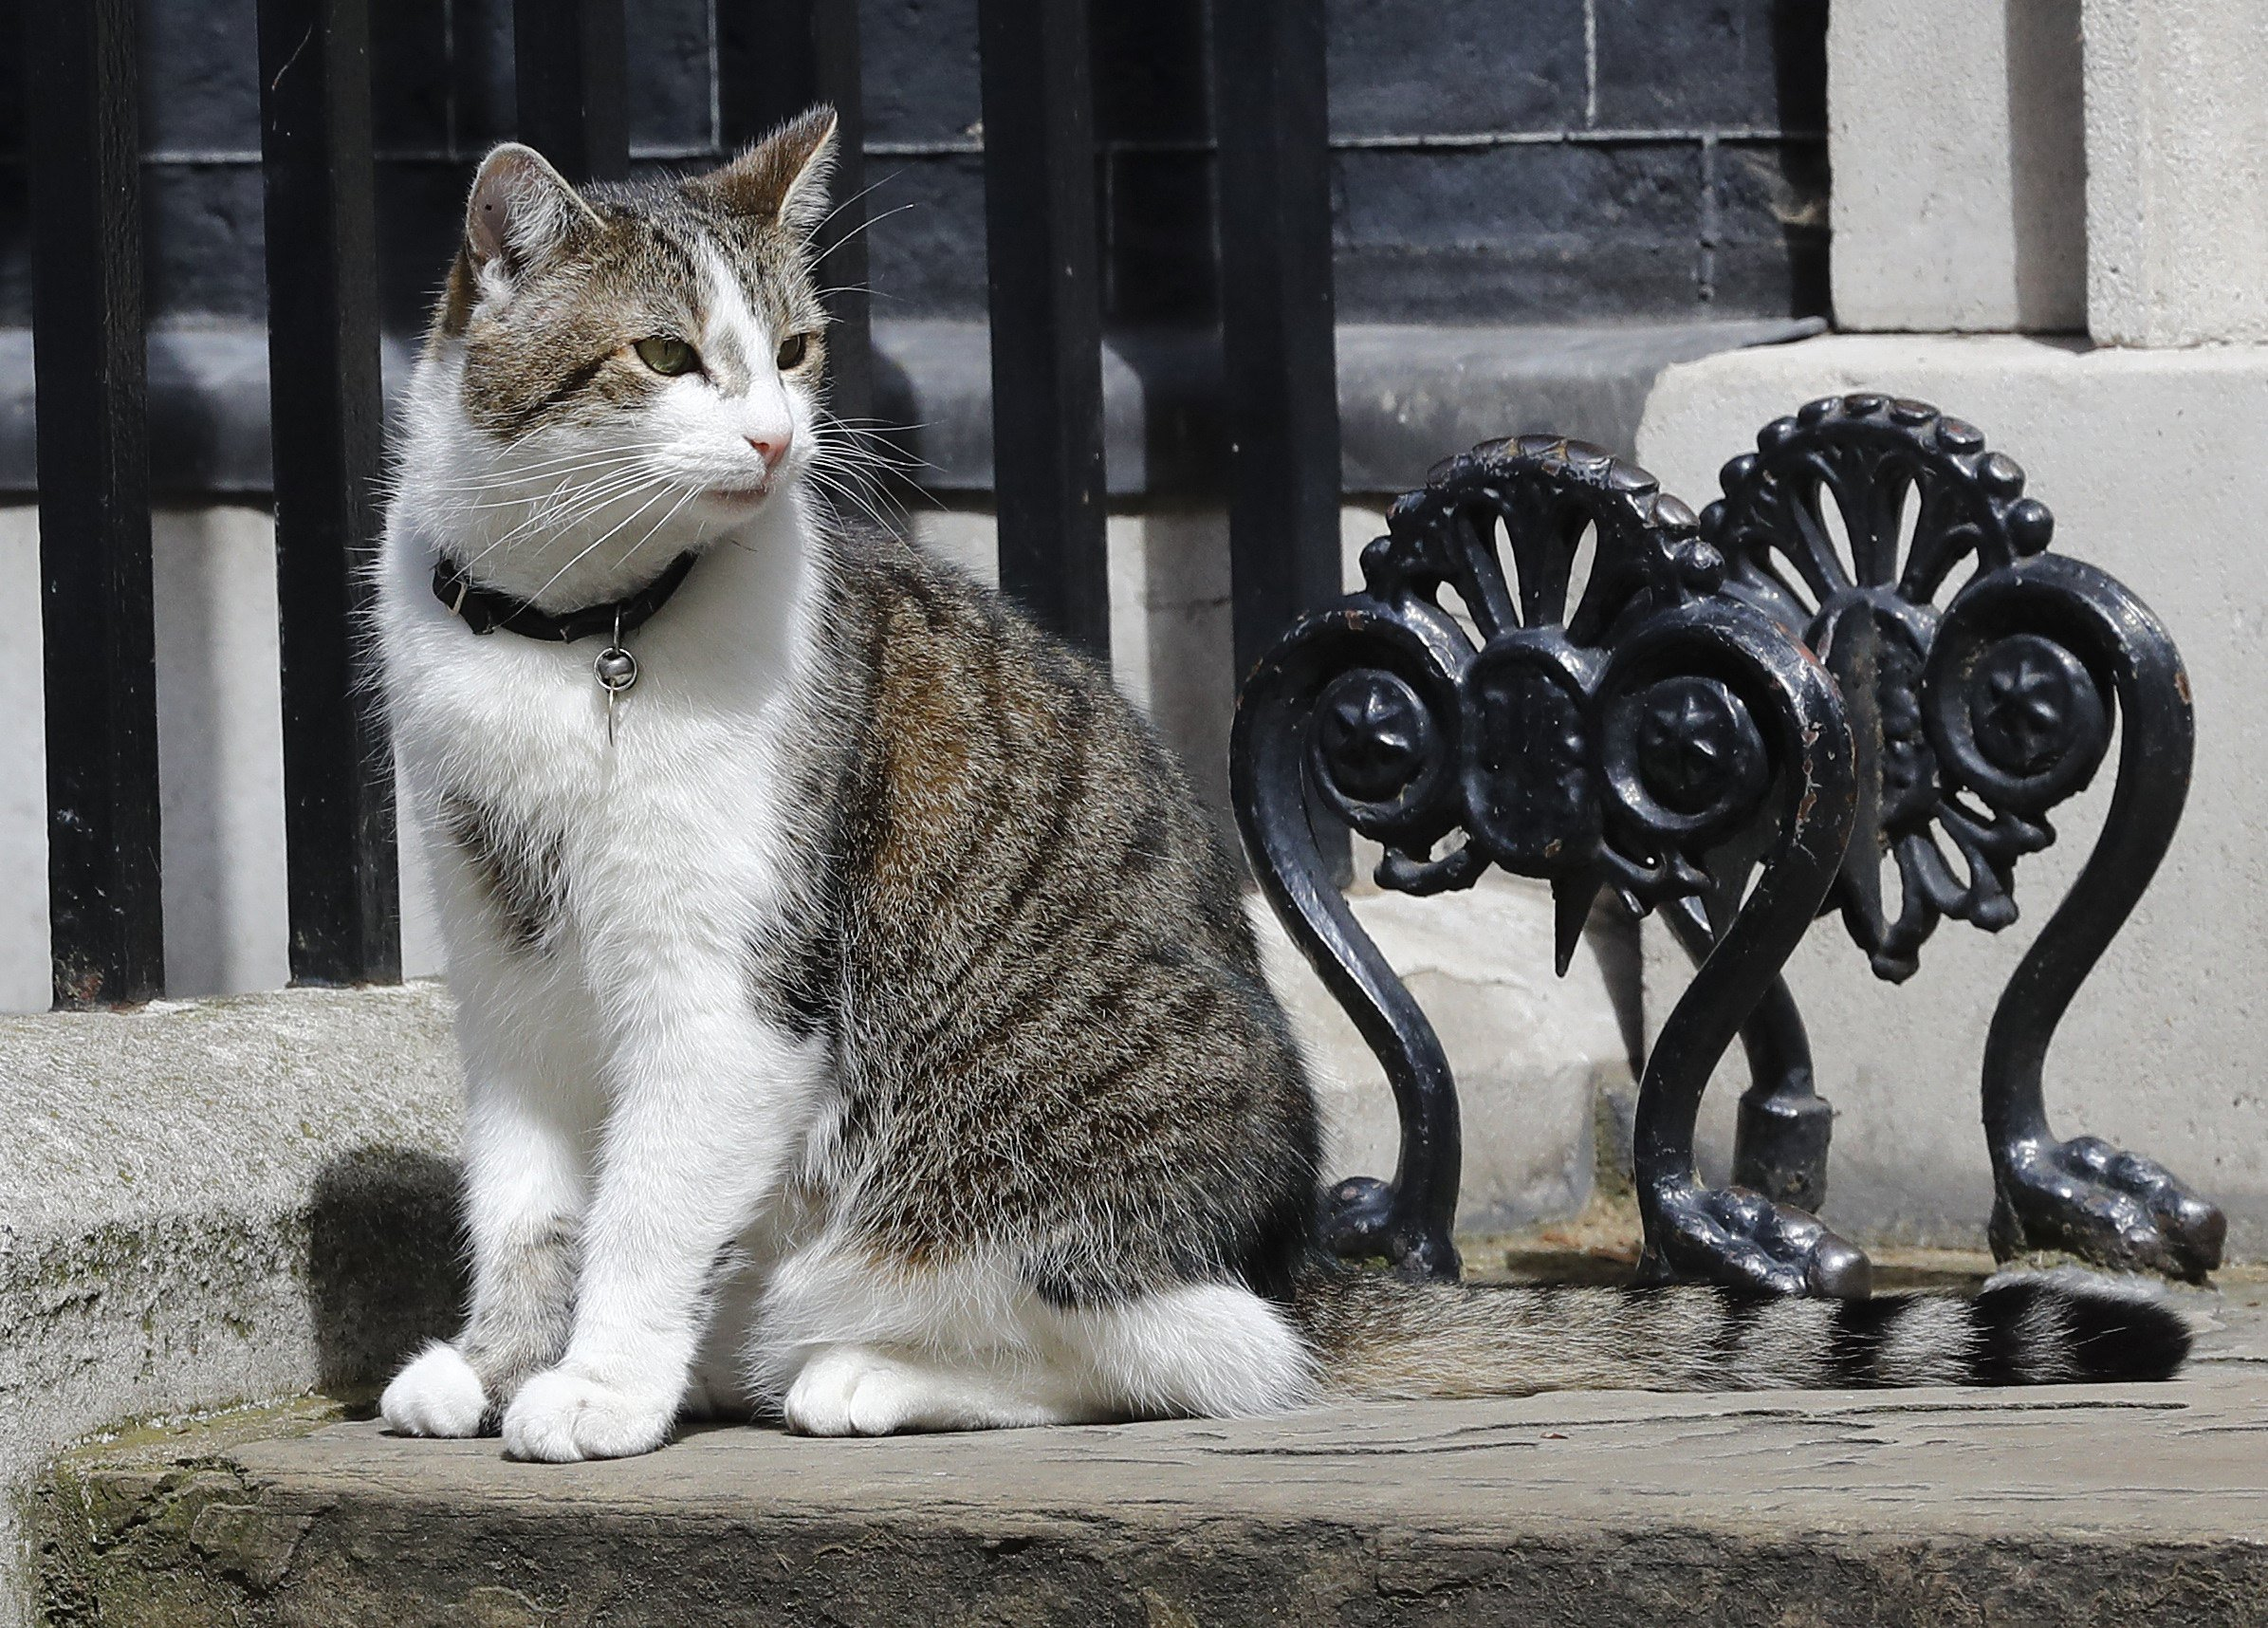 Larry the Downing Street cat sits on the steps of 10 Downing Street in London, after Britain's Prime Minister David Cameron left to face prime minister's questions for the last time Wednesday, July 13, 2016. Cameron will be appearing before Parliament as prime minister for the last time before handing over to successor Theresa May.(AP Photo/Frank Augstein)